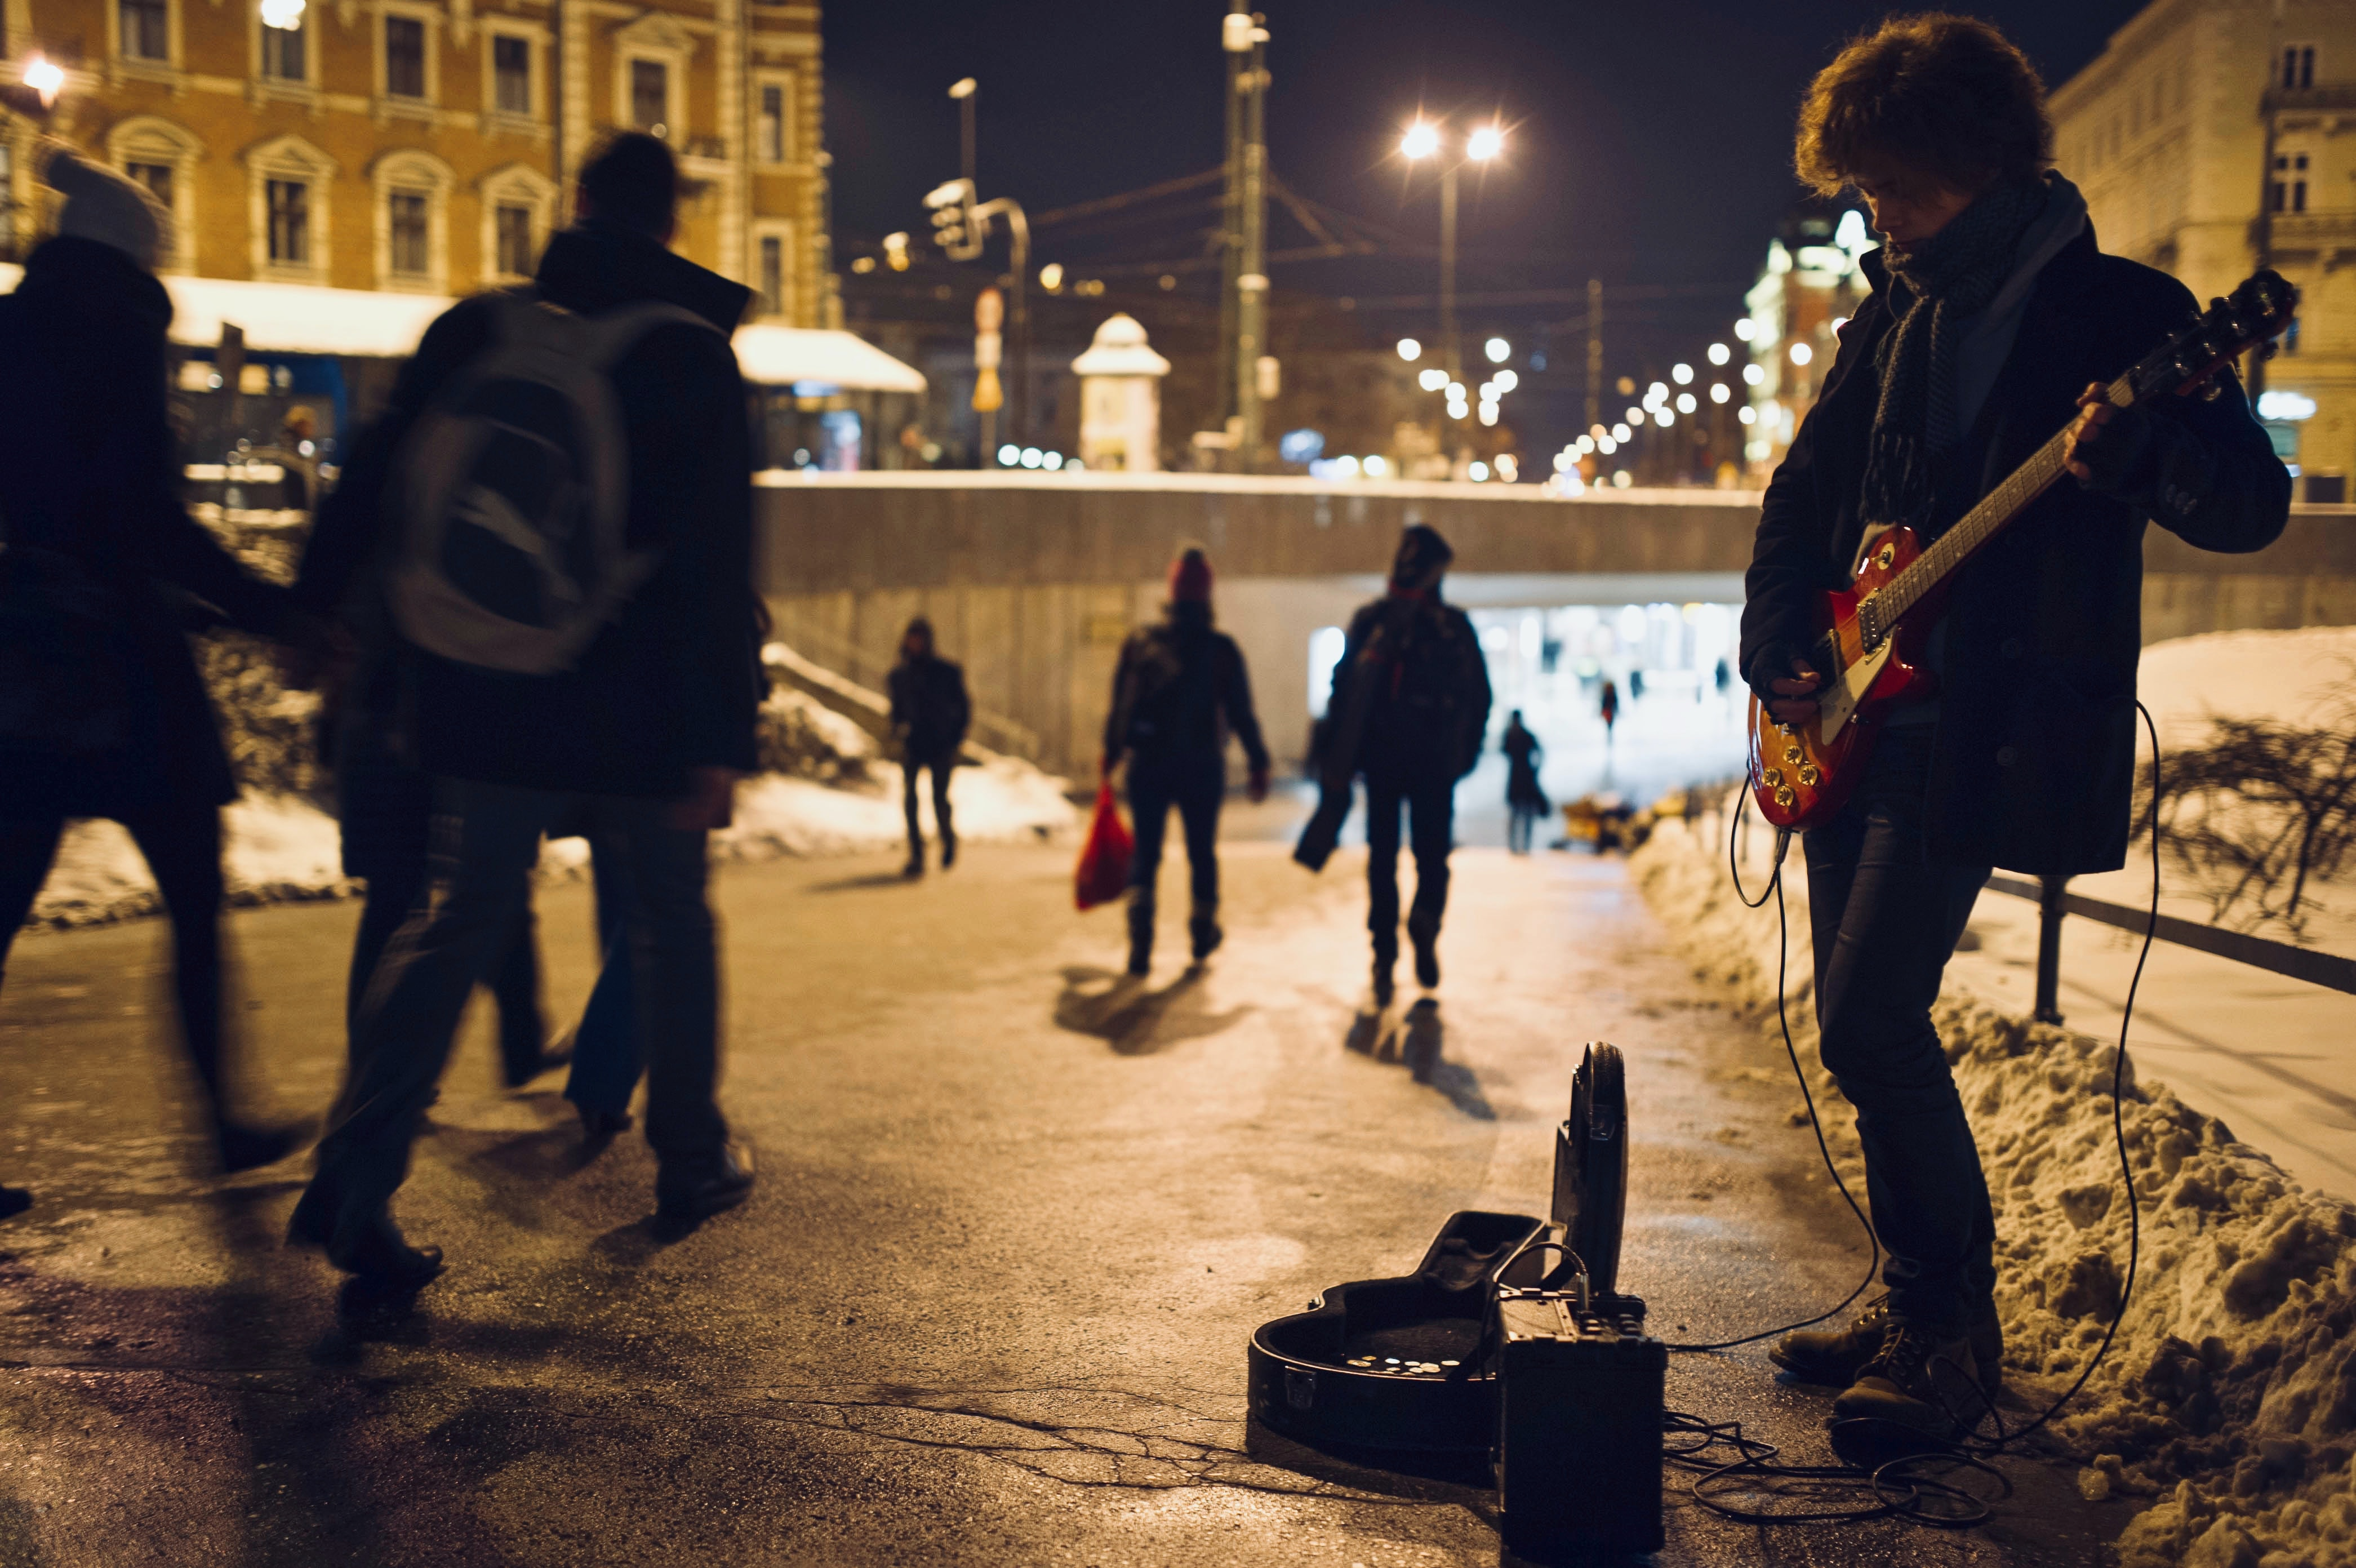 man playing guitar on street during nighttime